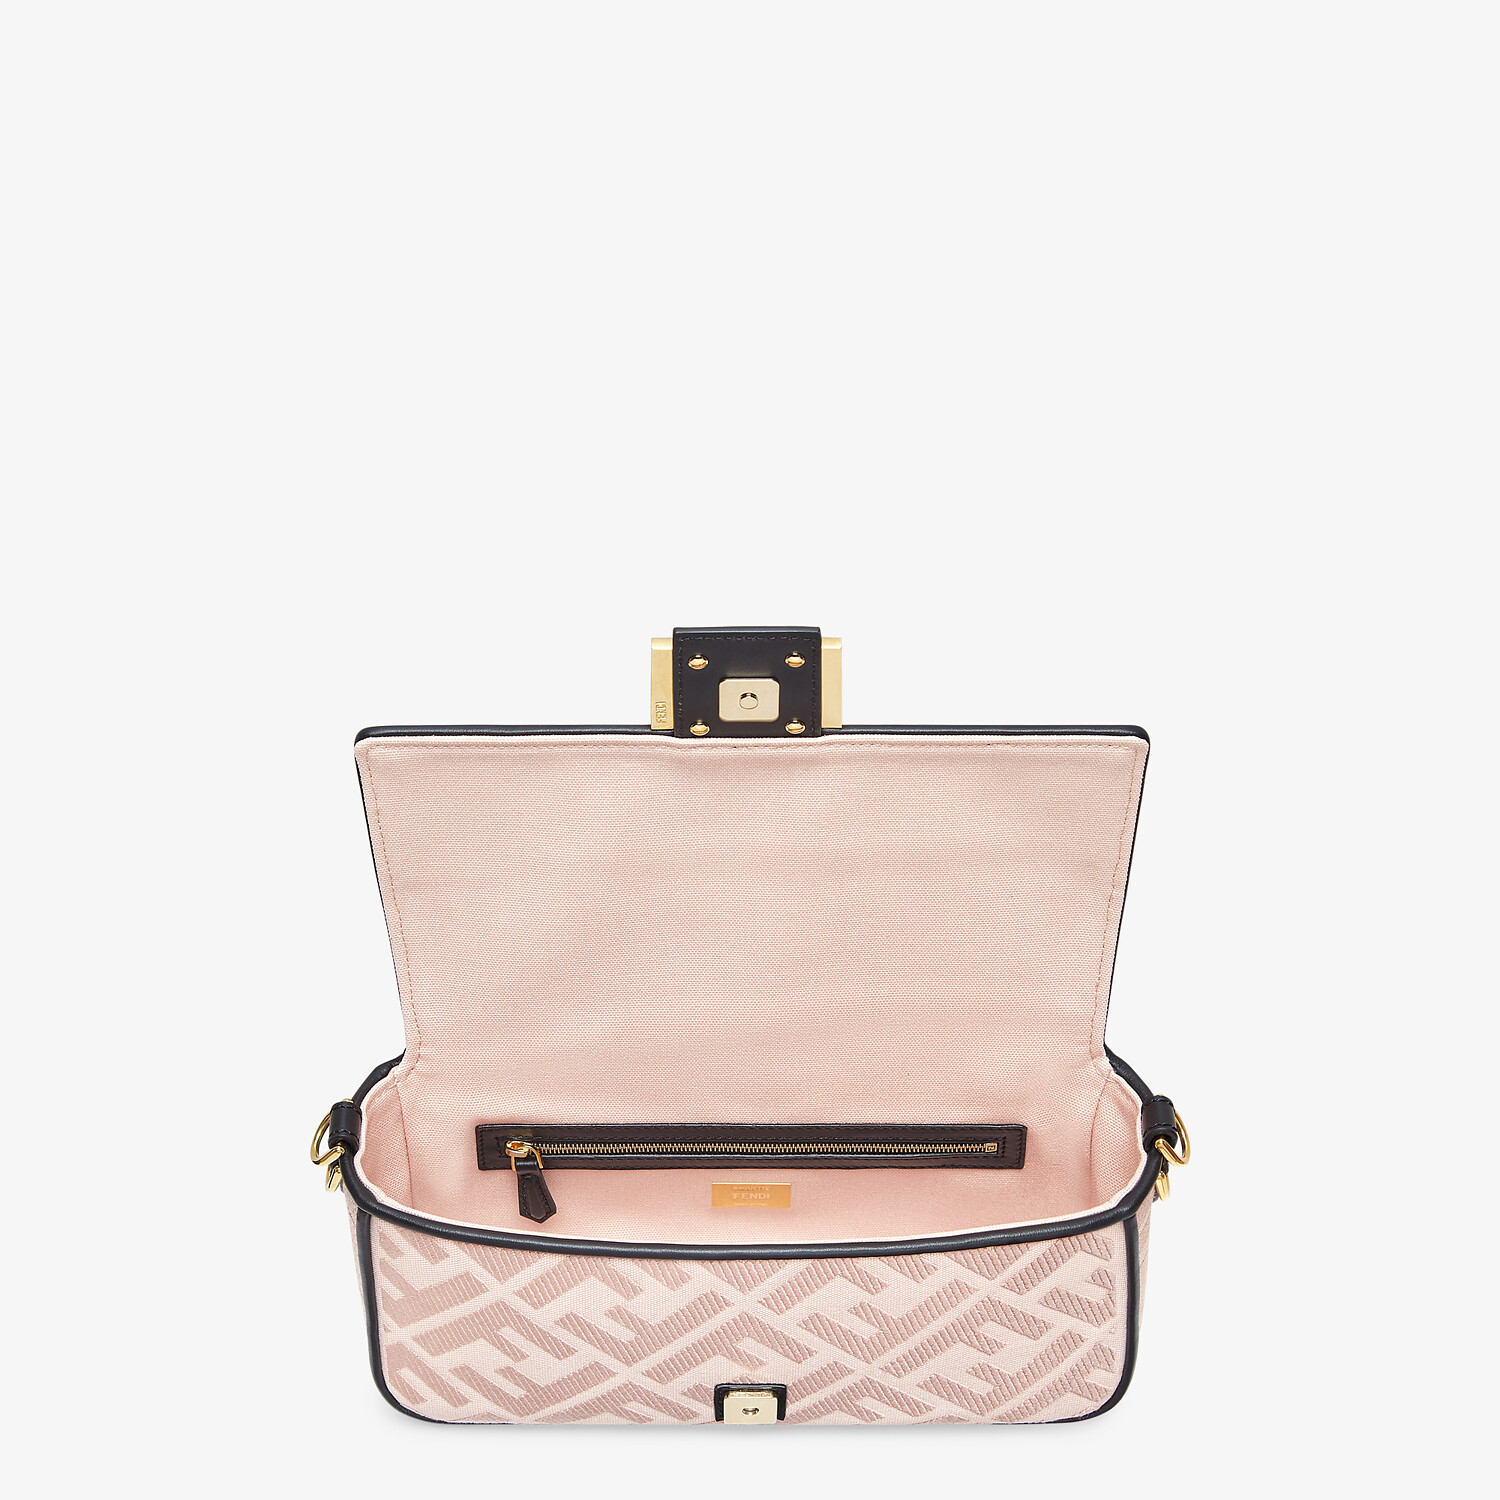 FENDI BAGUETTE - Embroidered pink canvas bag - view 4 detail